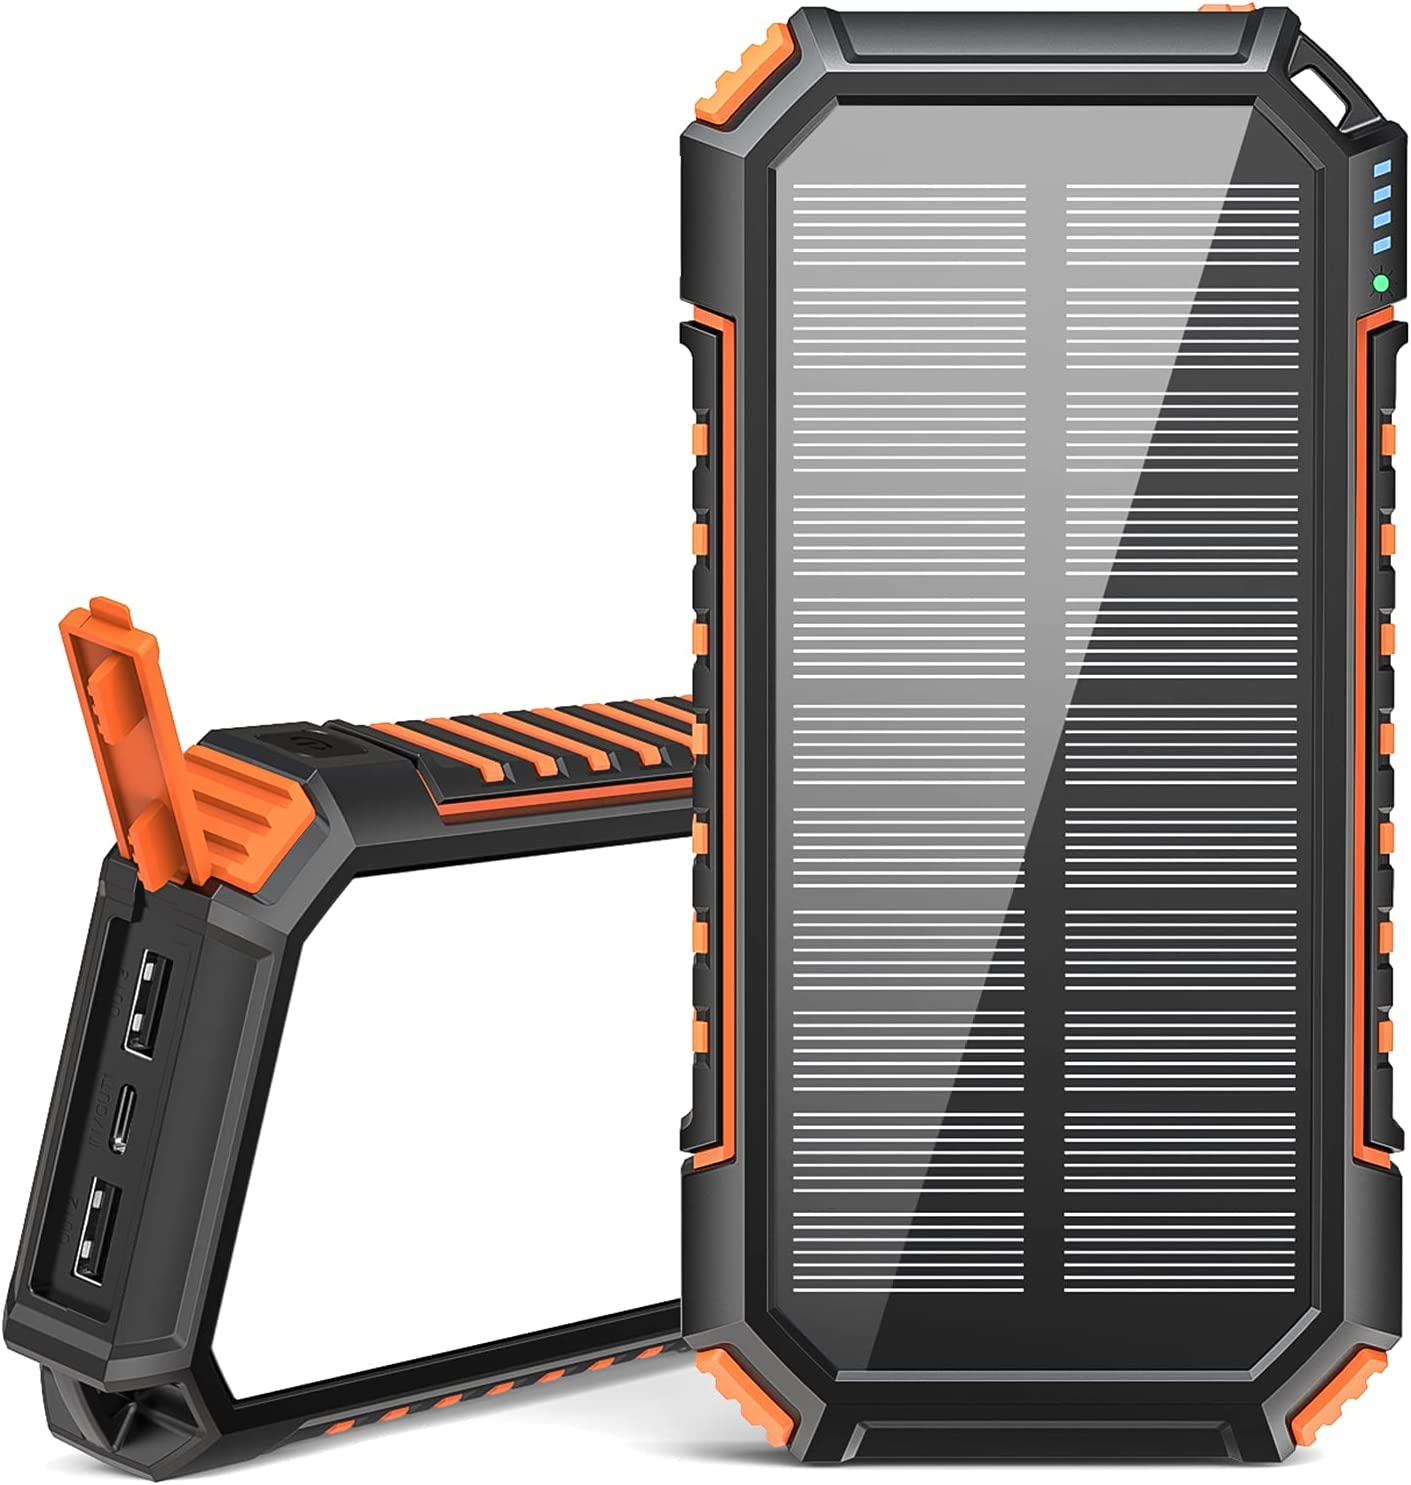 Solar Charger 26800mAh, USB C Fast Charging Power Bank with Orange